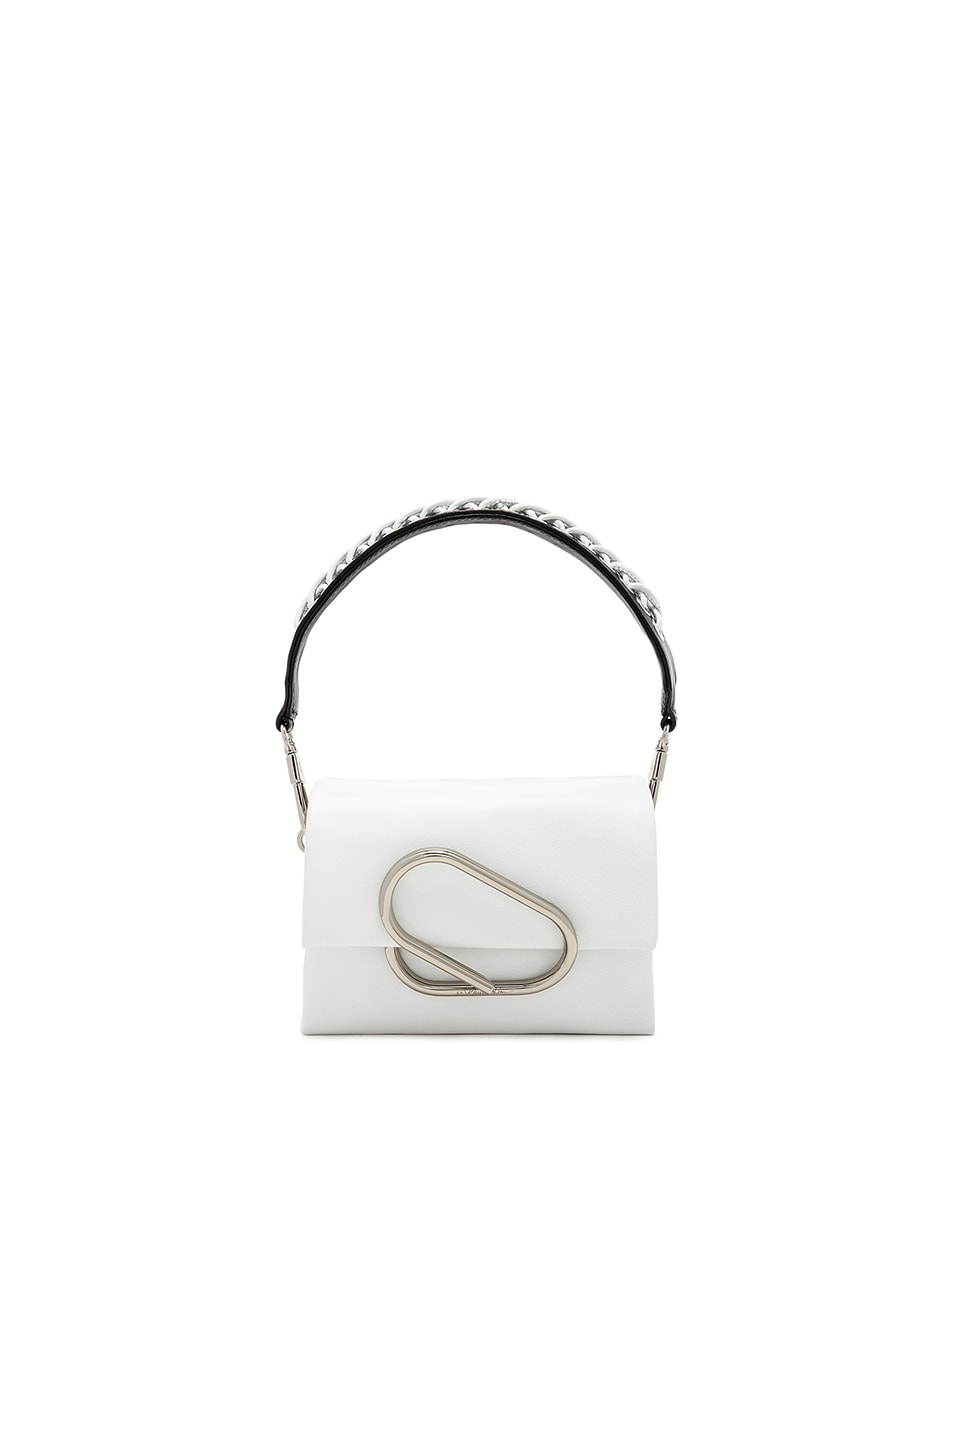 3.1 phillip lim Alix Micro Sport Bag in OP White